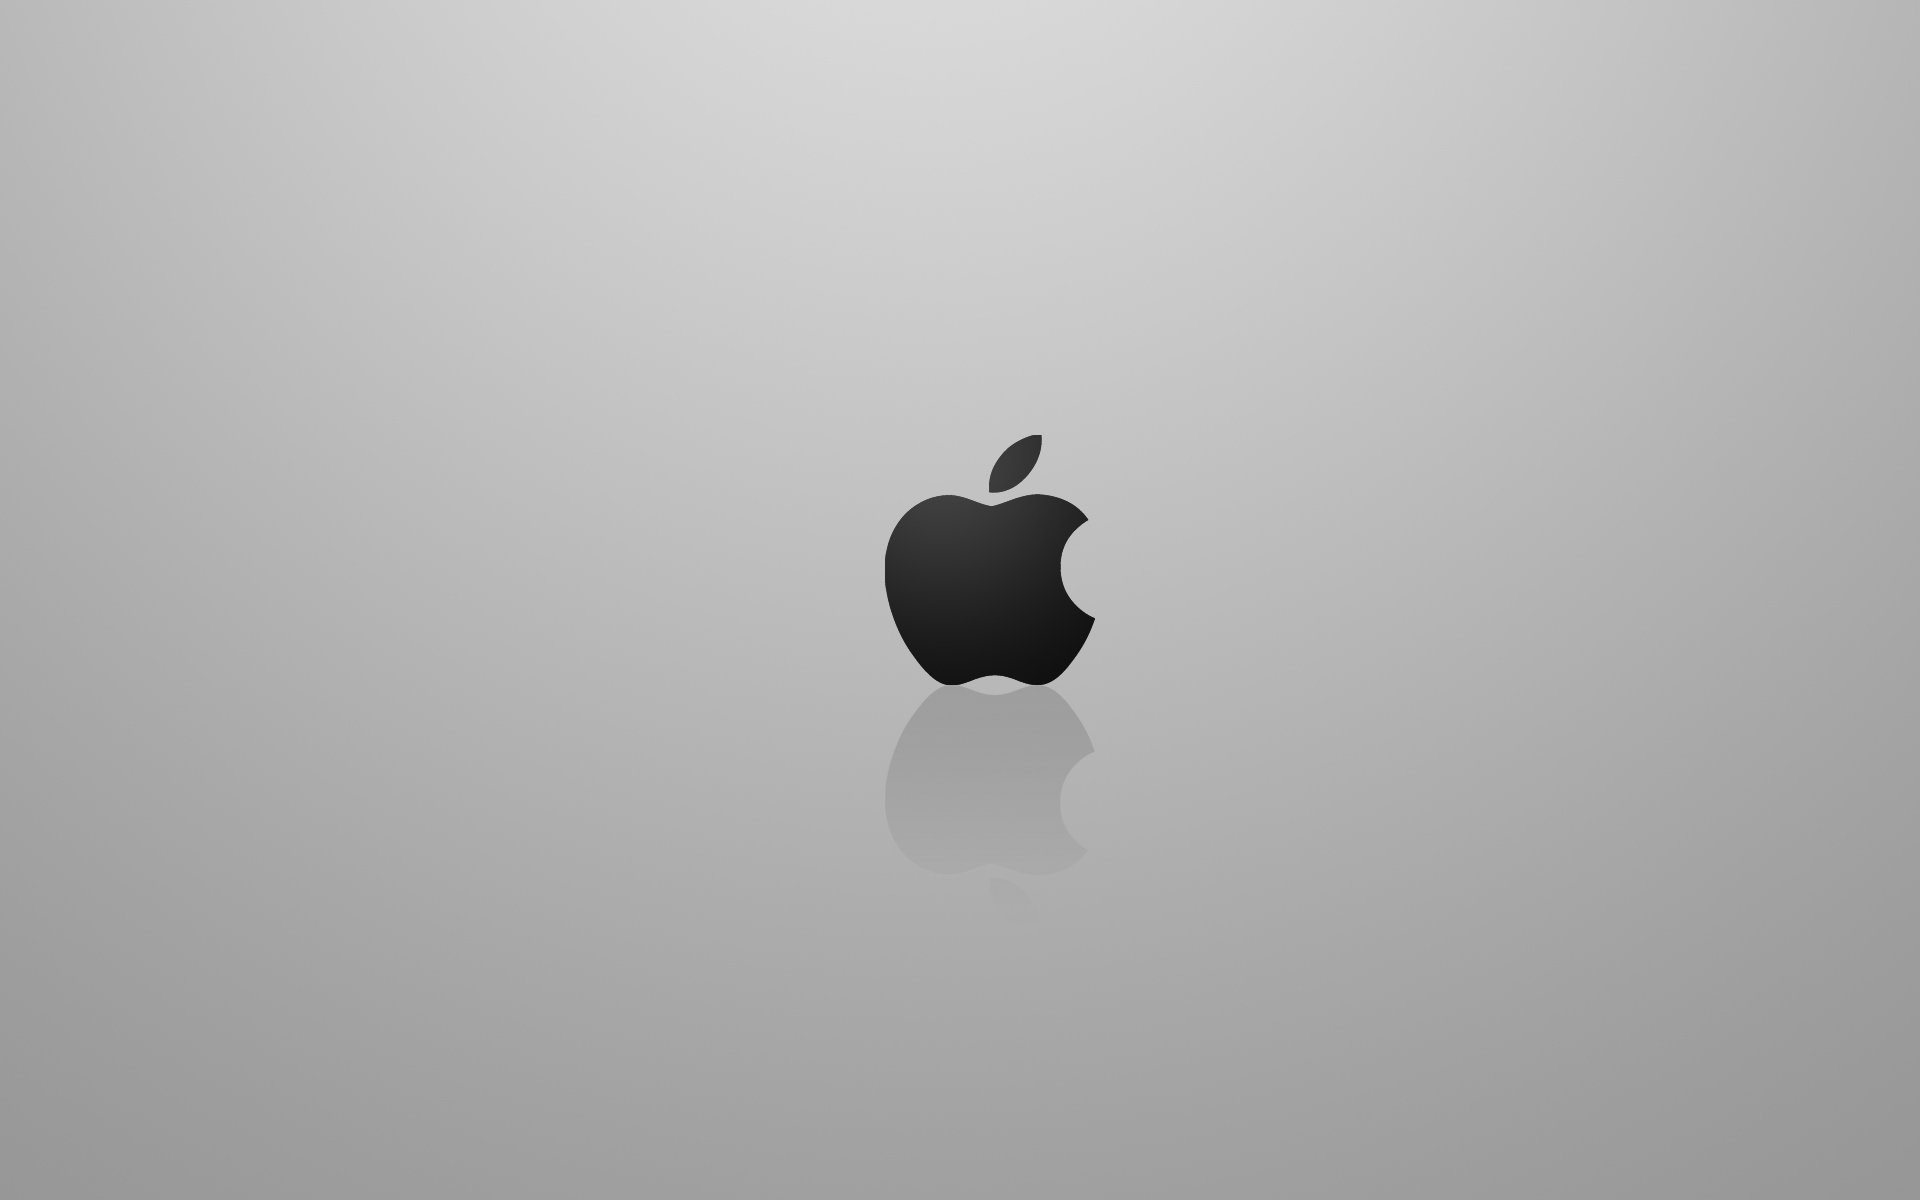 mac wallpapers wallpaper series pictures stunning apple 1920x1200